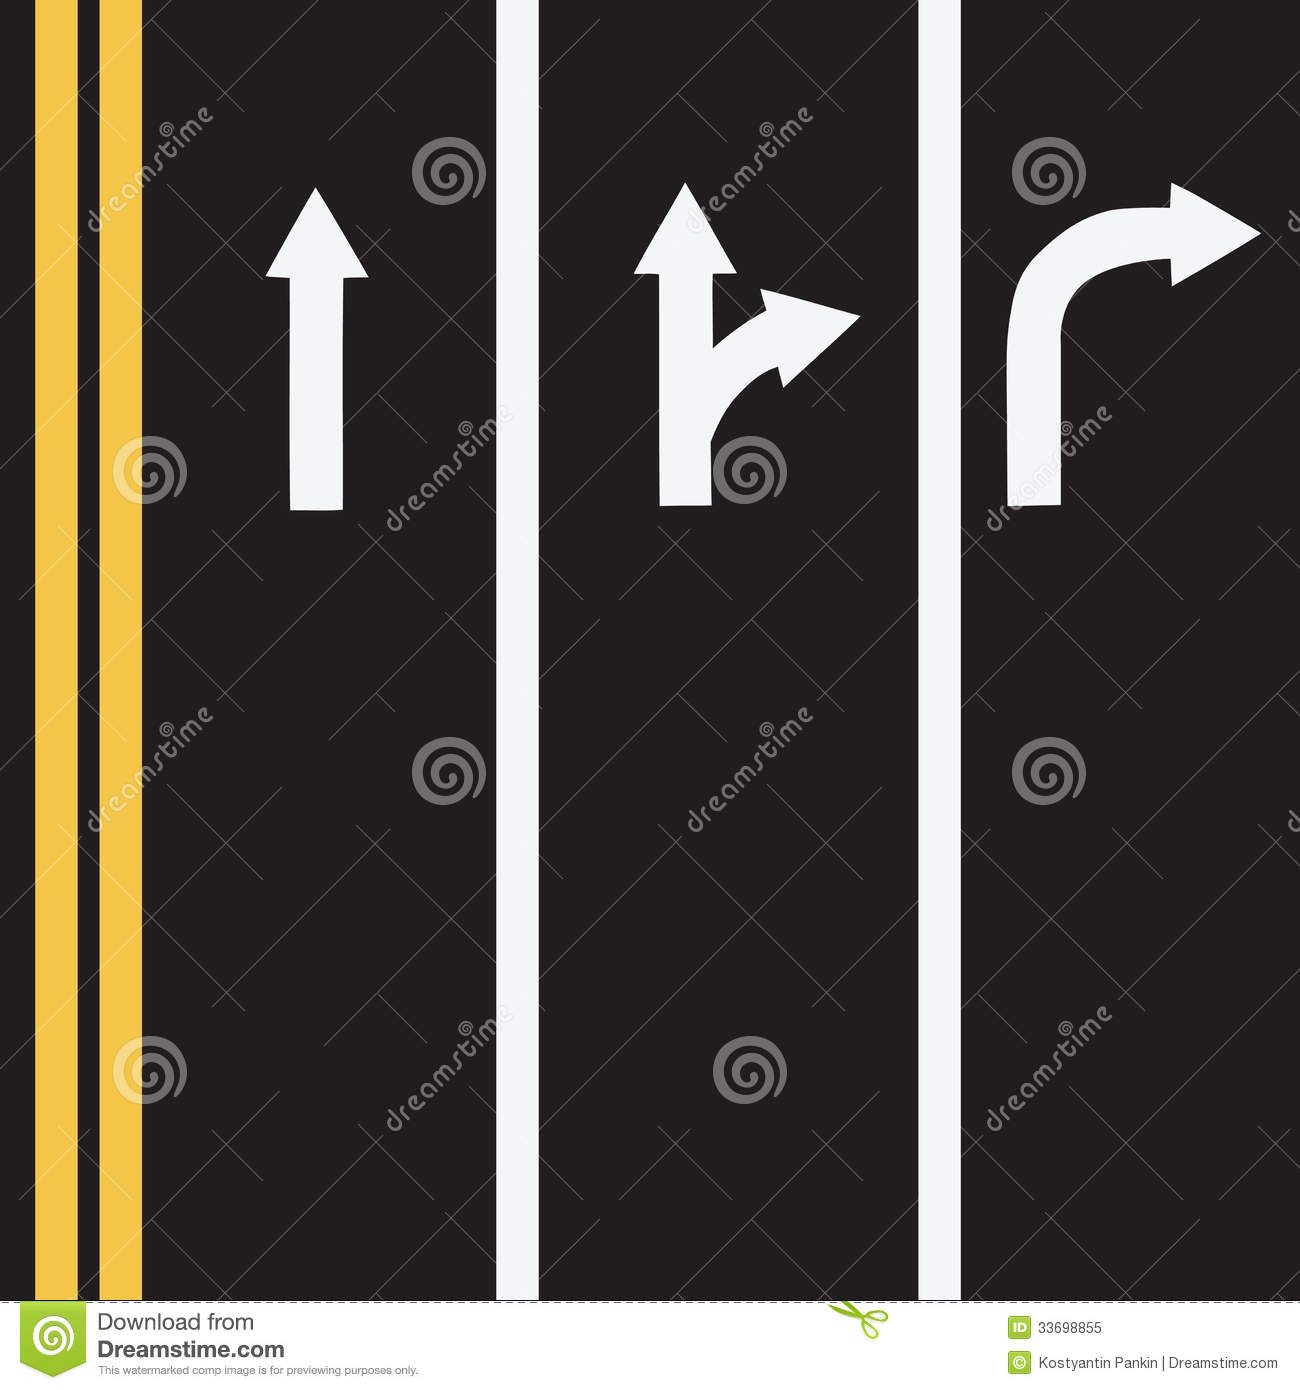 Road Markings Clipart.